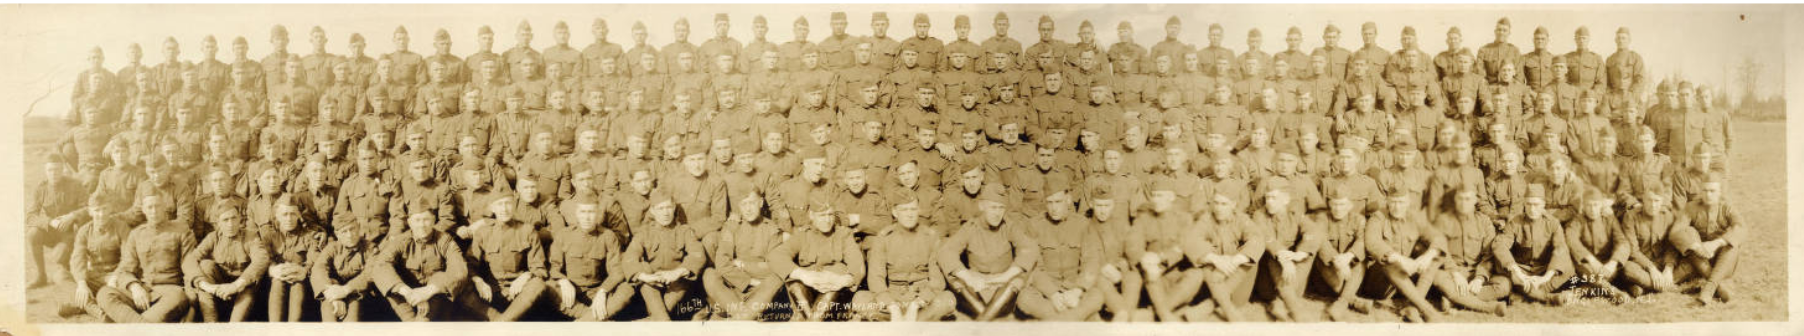 166th Infantry Company B